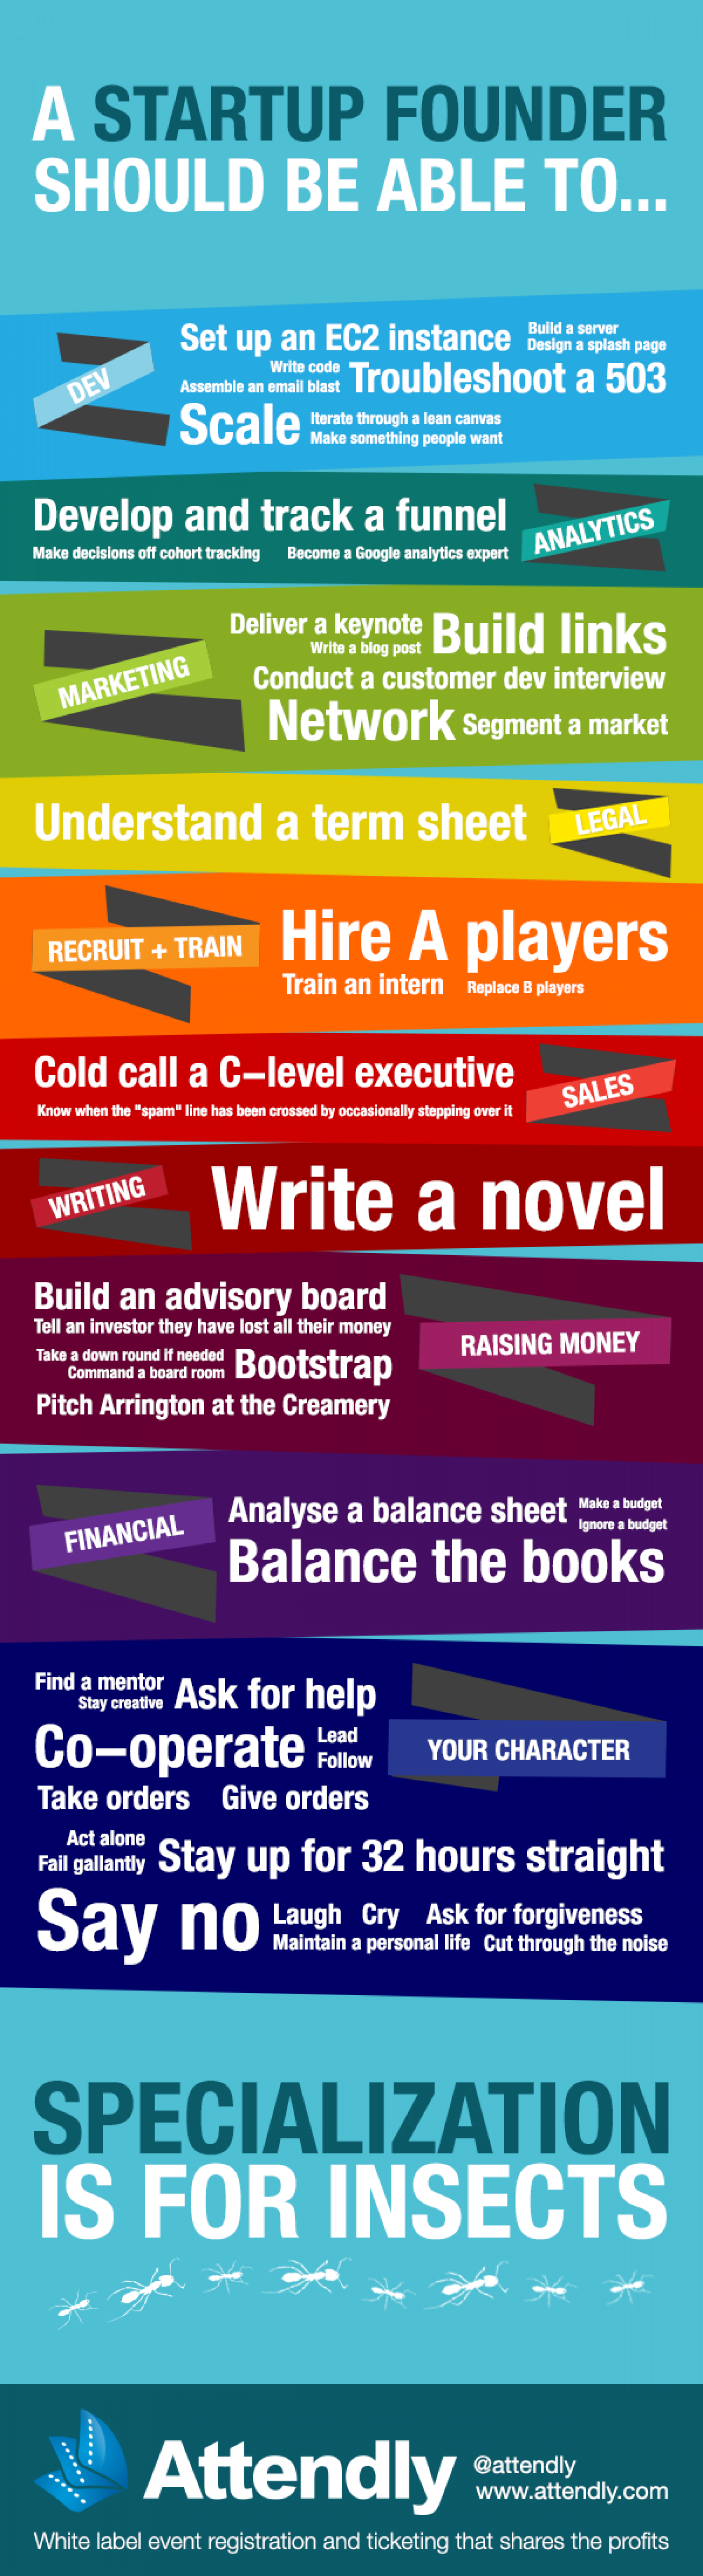 What A Startup Founder Should Be Able To Do Infographic